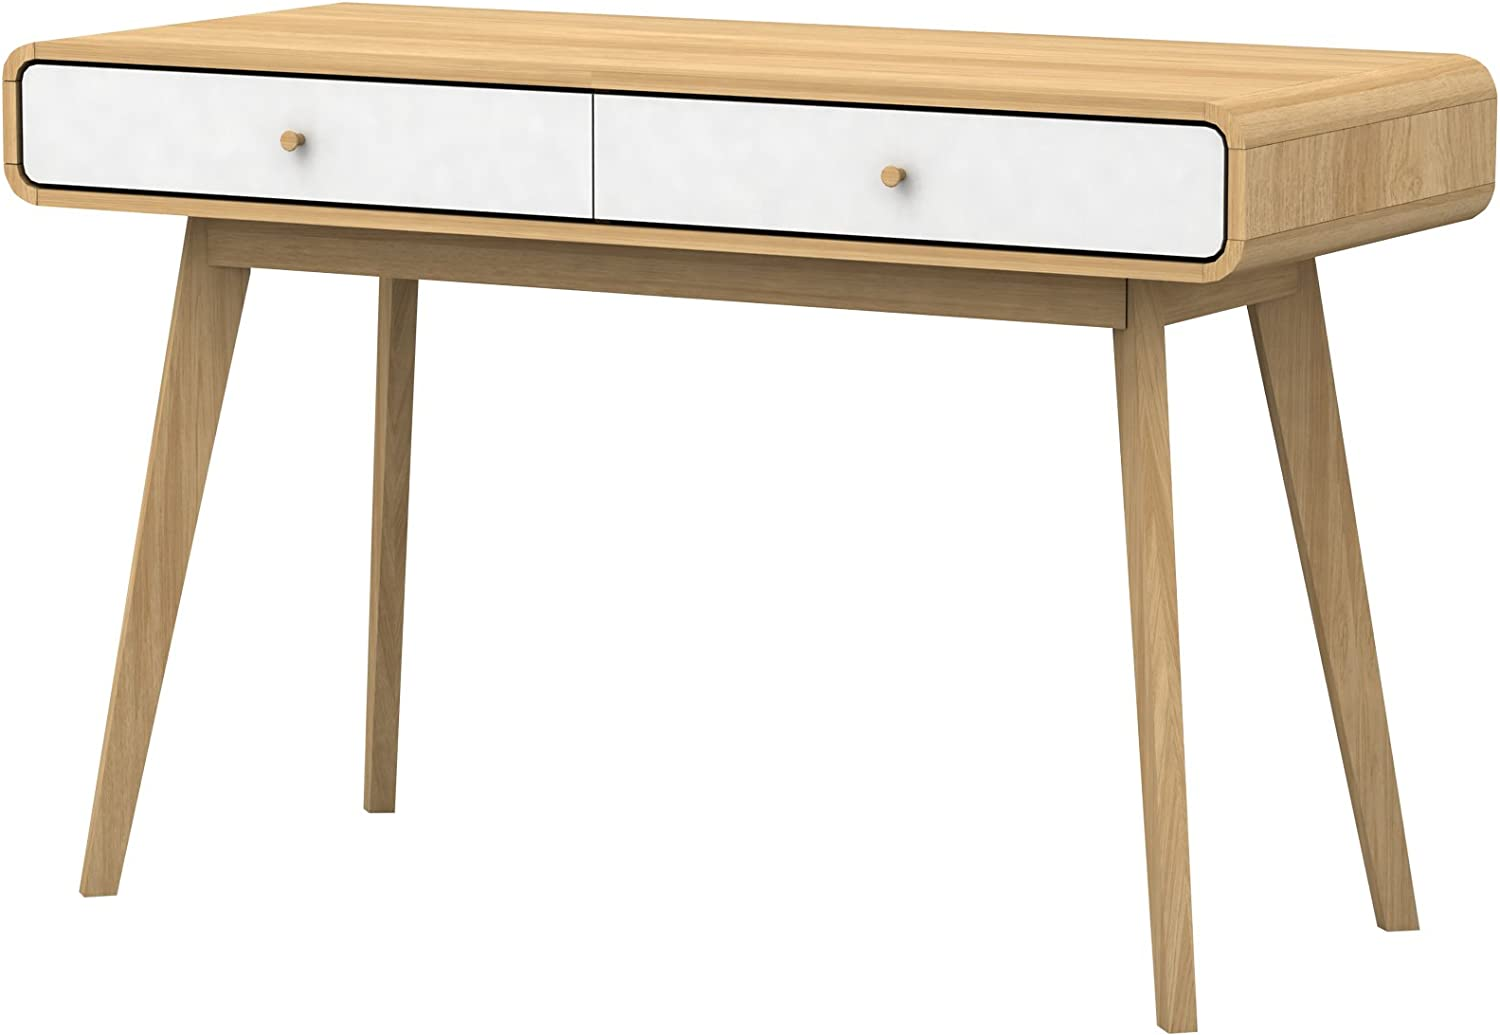 Computer Desk Home Office Console Table With 2 Drawers Workstation Modern Scandinavian Design Foiled Particle Board Easy Care Mdf Oak White Amazon Co Uk Kitchen Home